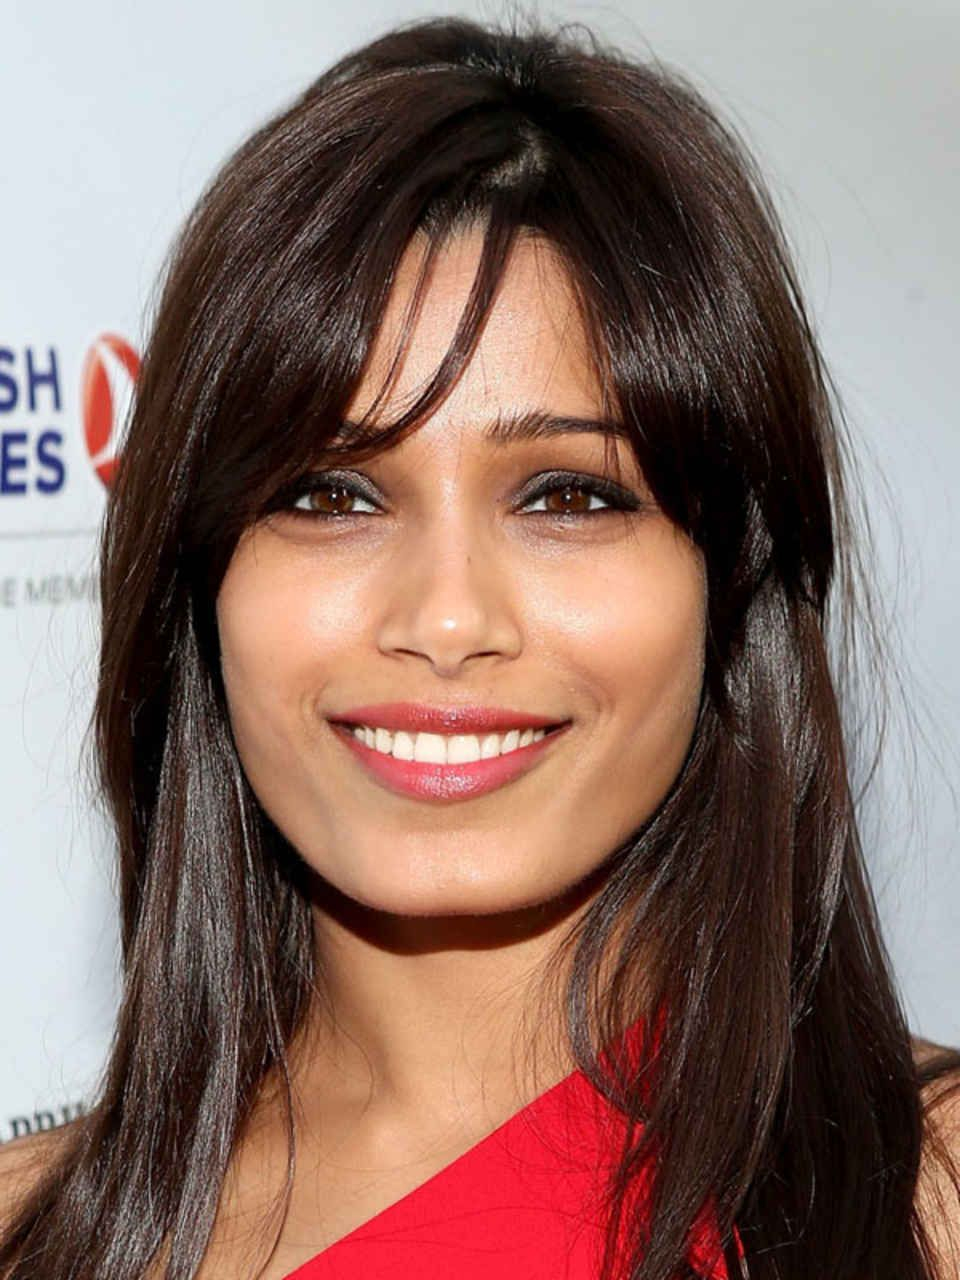 Hacked Freida Pinto nude (52 photo), Sexy, Fappening, Feet, bra 2017